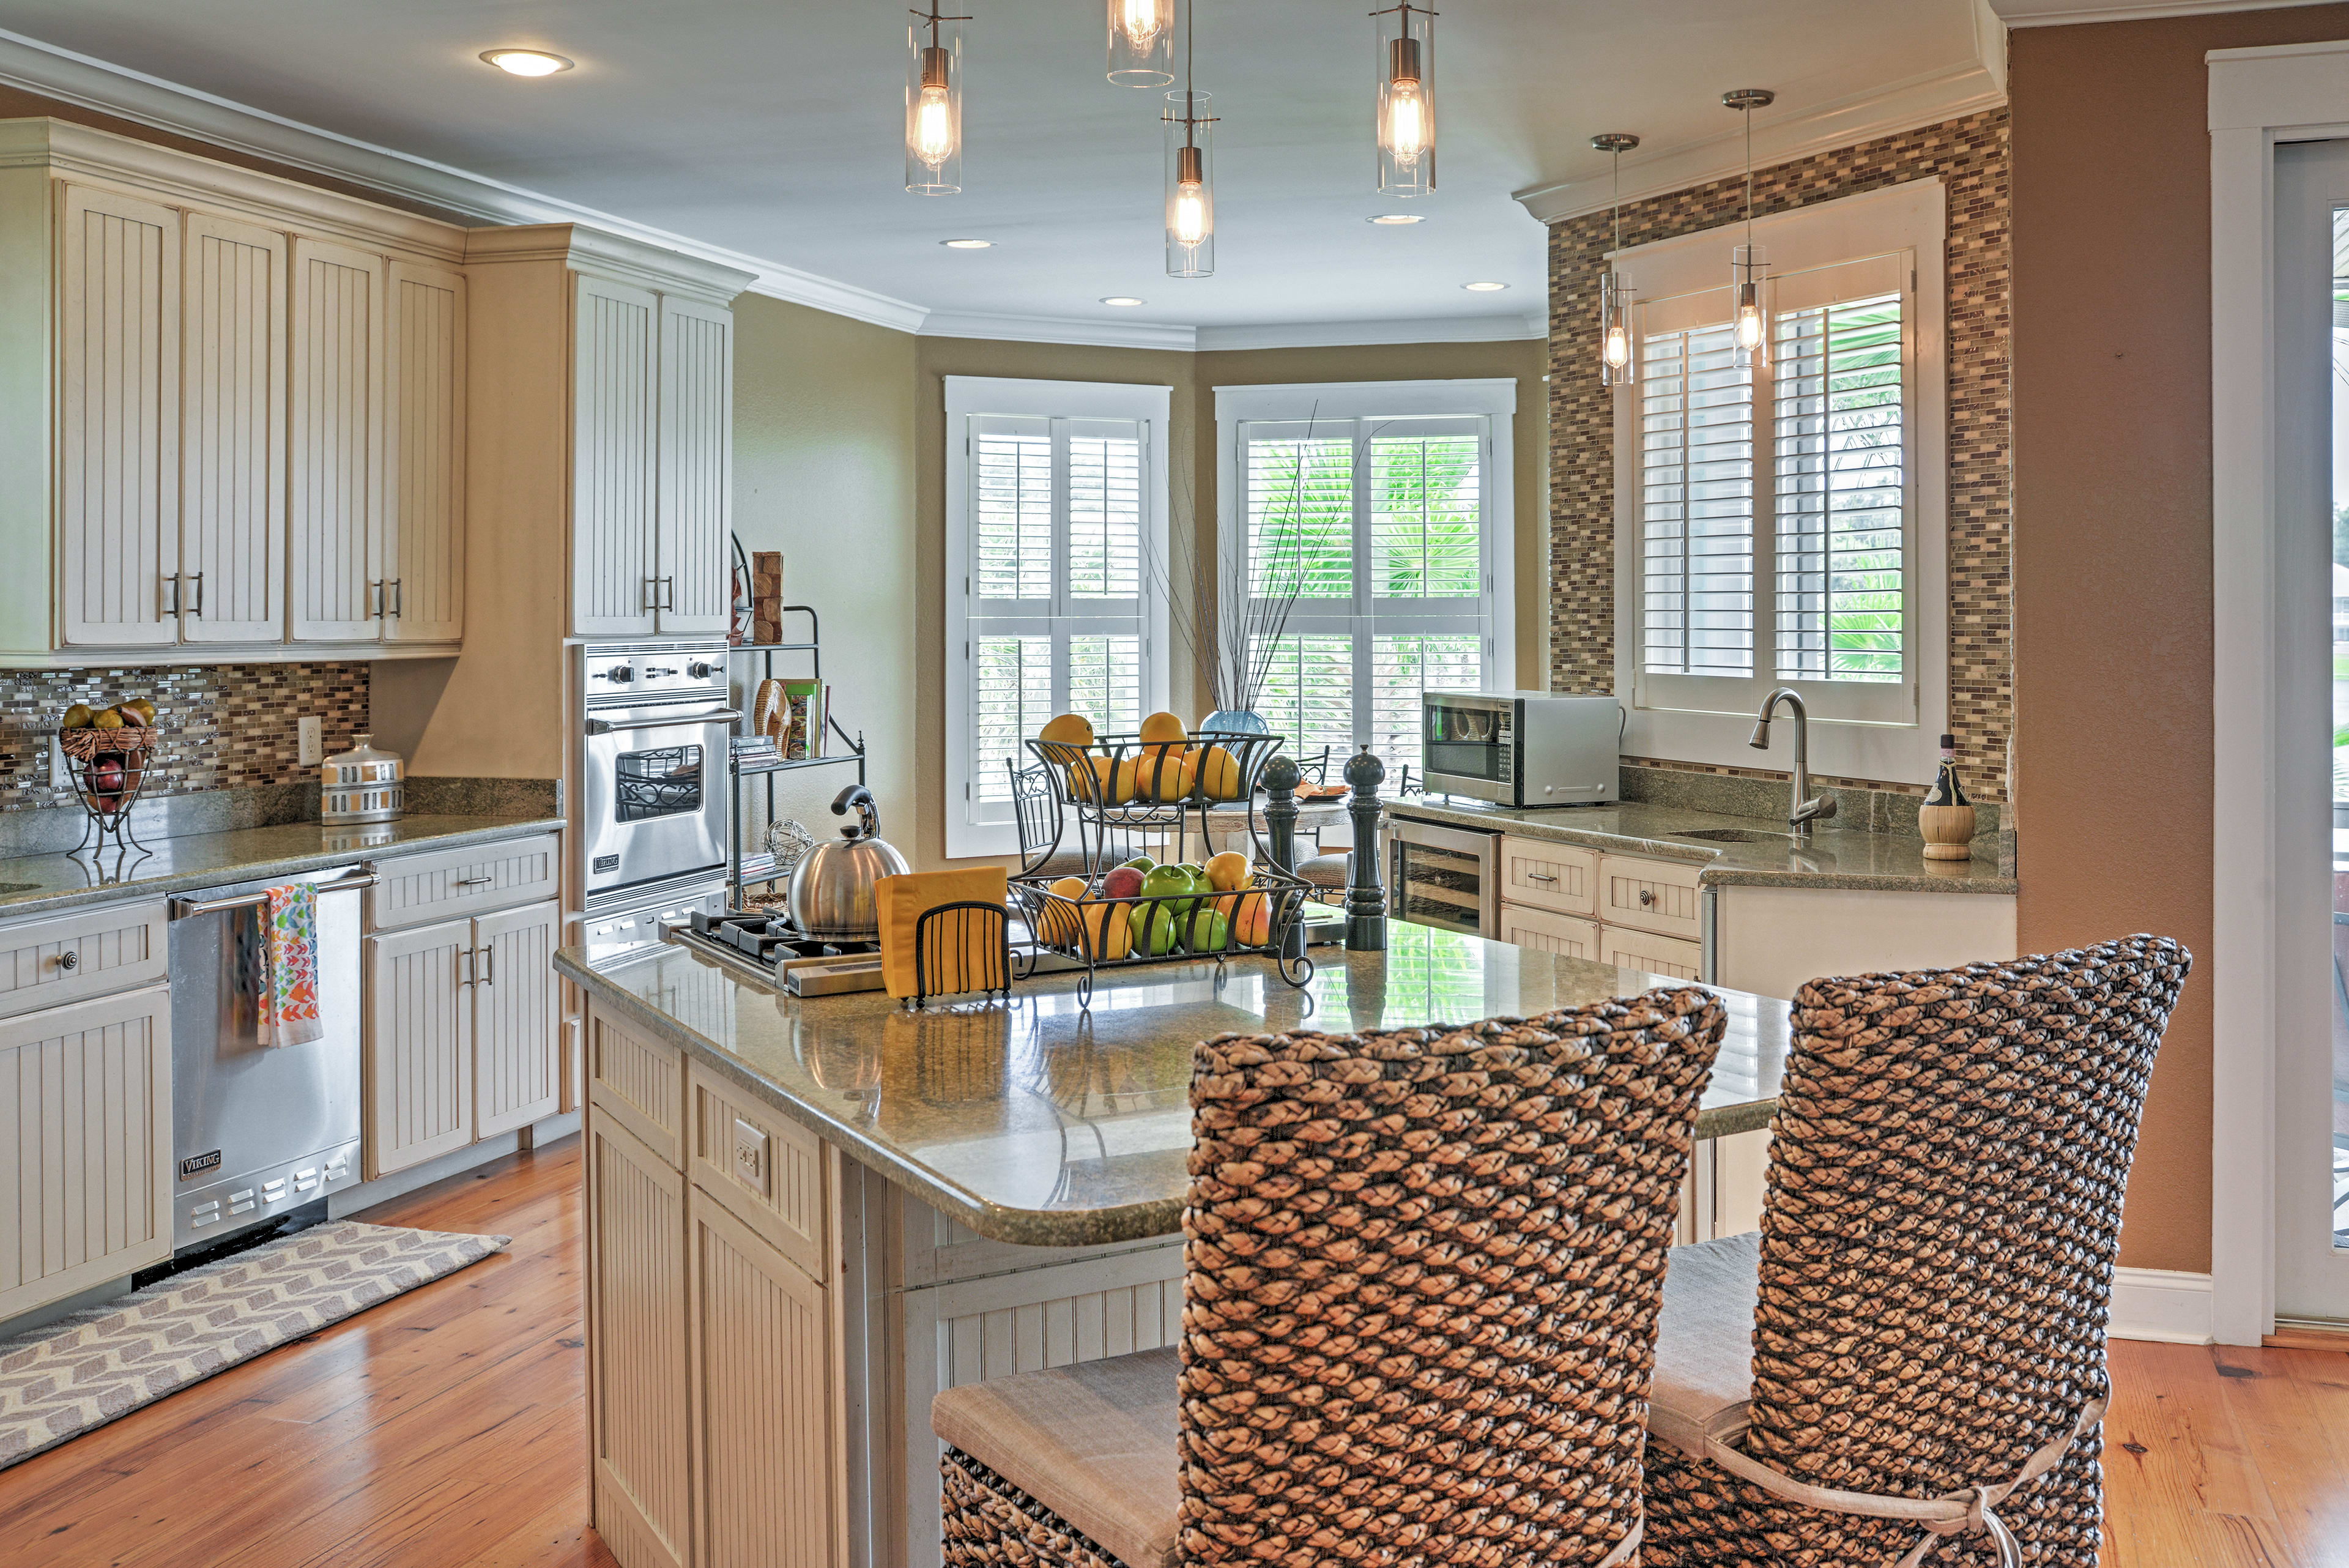 Create mouthwatering meals in the fully equipped kitchen.